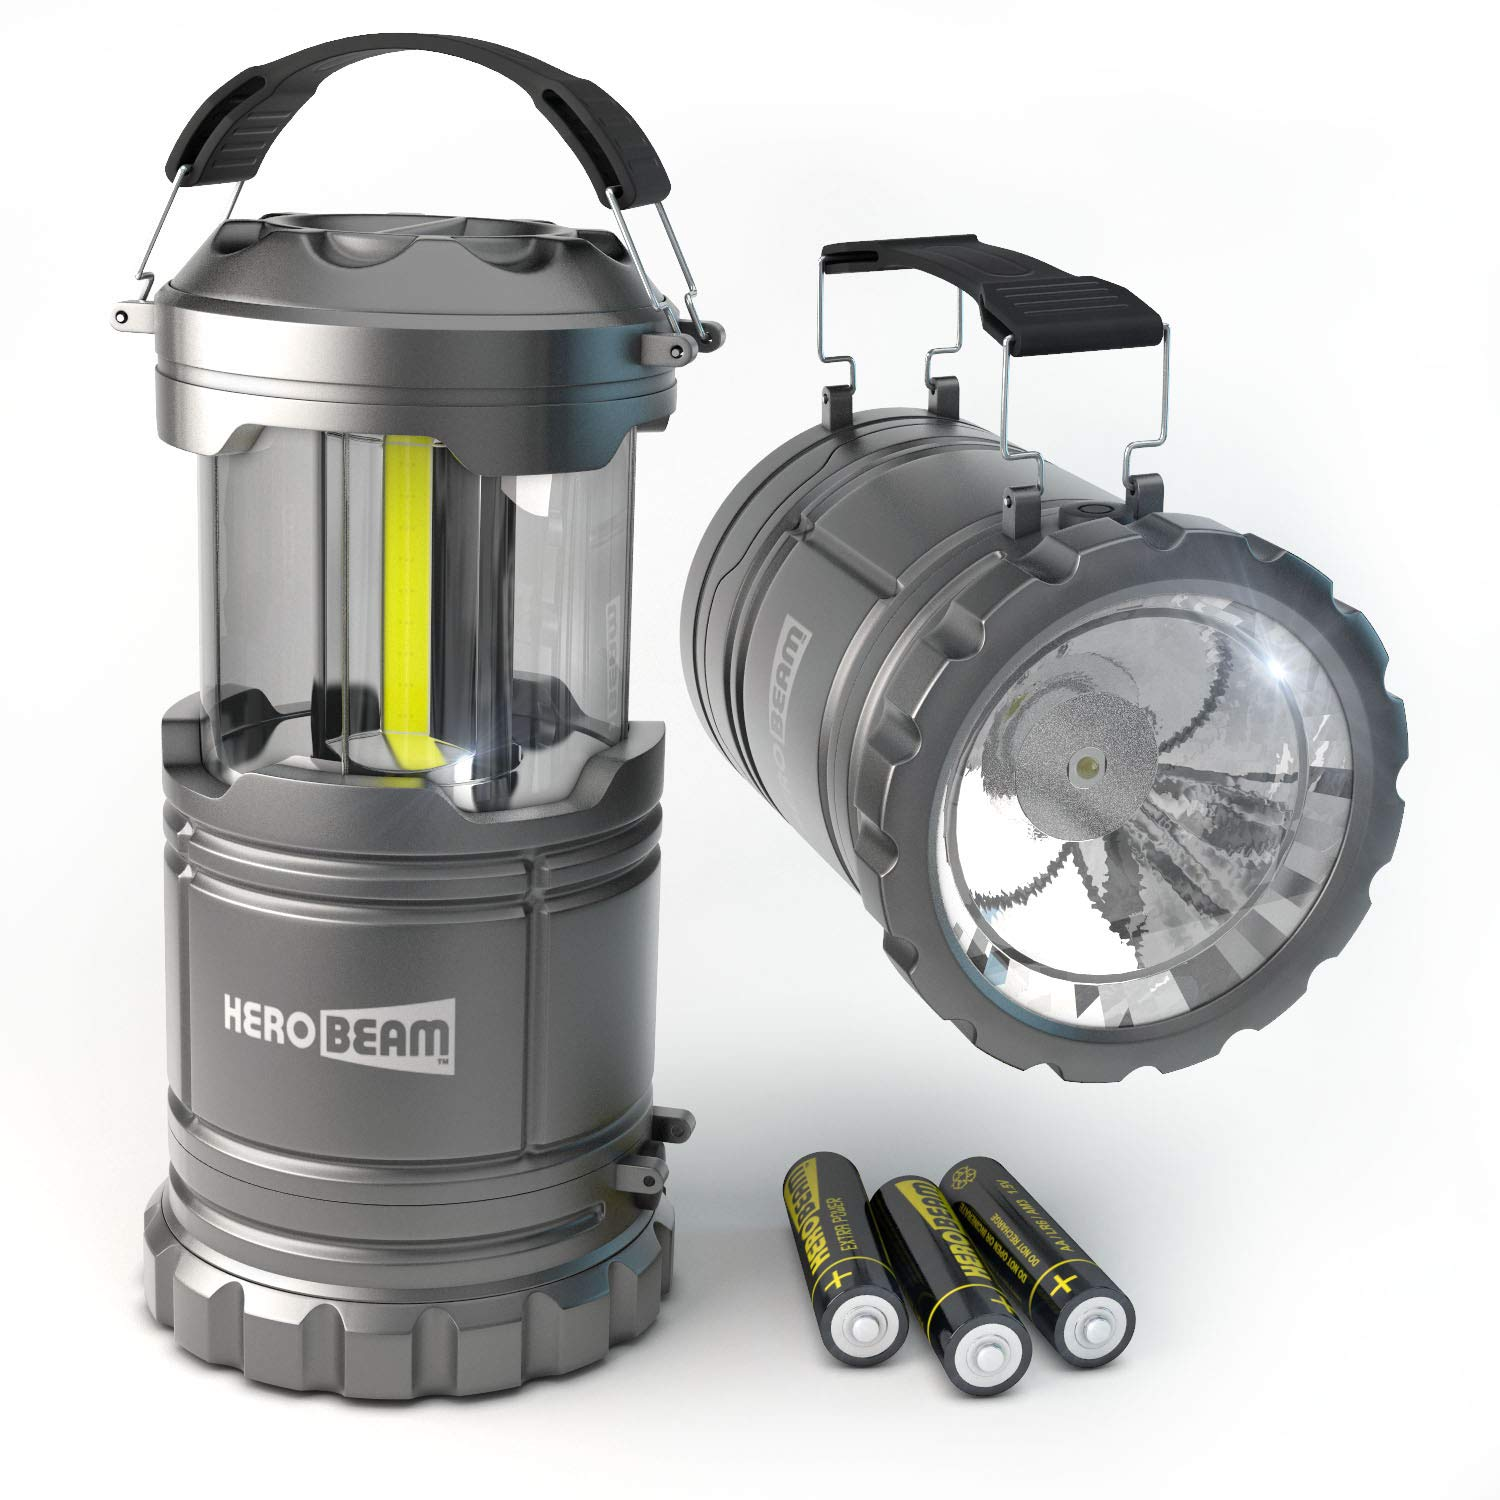 HeroBeam 2 x LED Lantern V2.0 with Flashlight - Latest COB Technology (350 LUMENS) - Collapsible Camp Lamp - Great Light for Camping, Car, Shop, Attic, Garage - 5 Year Warranty by HeroBeam